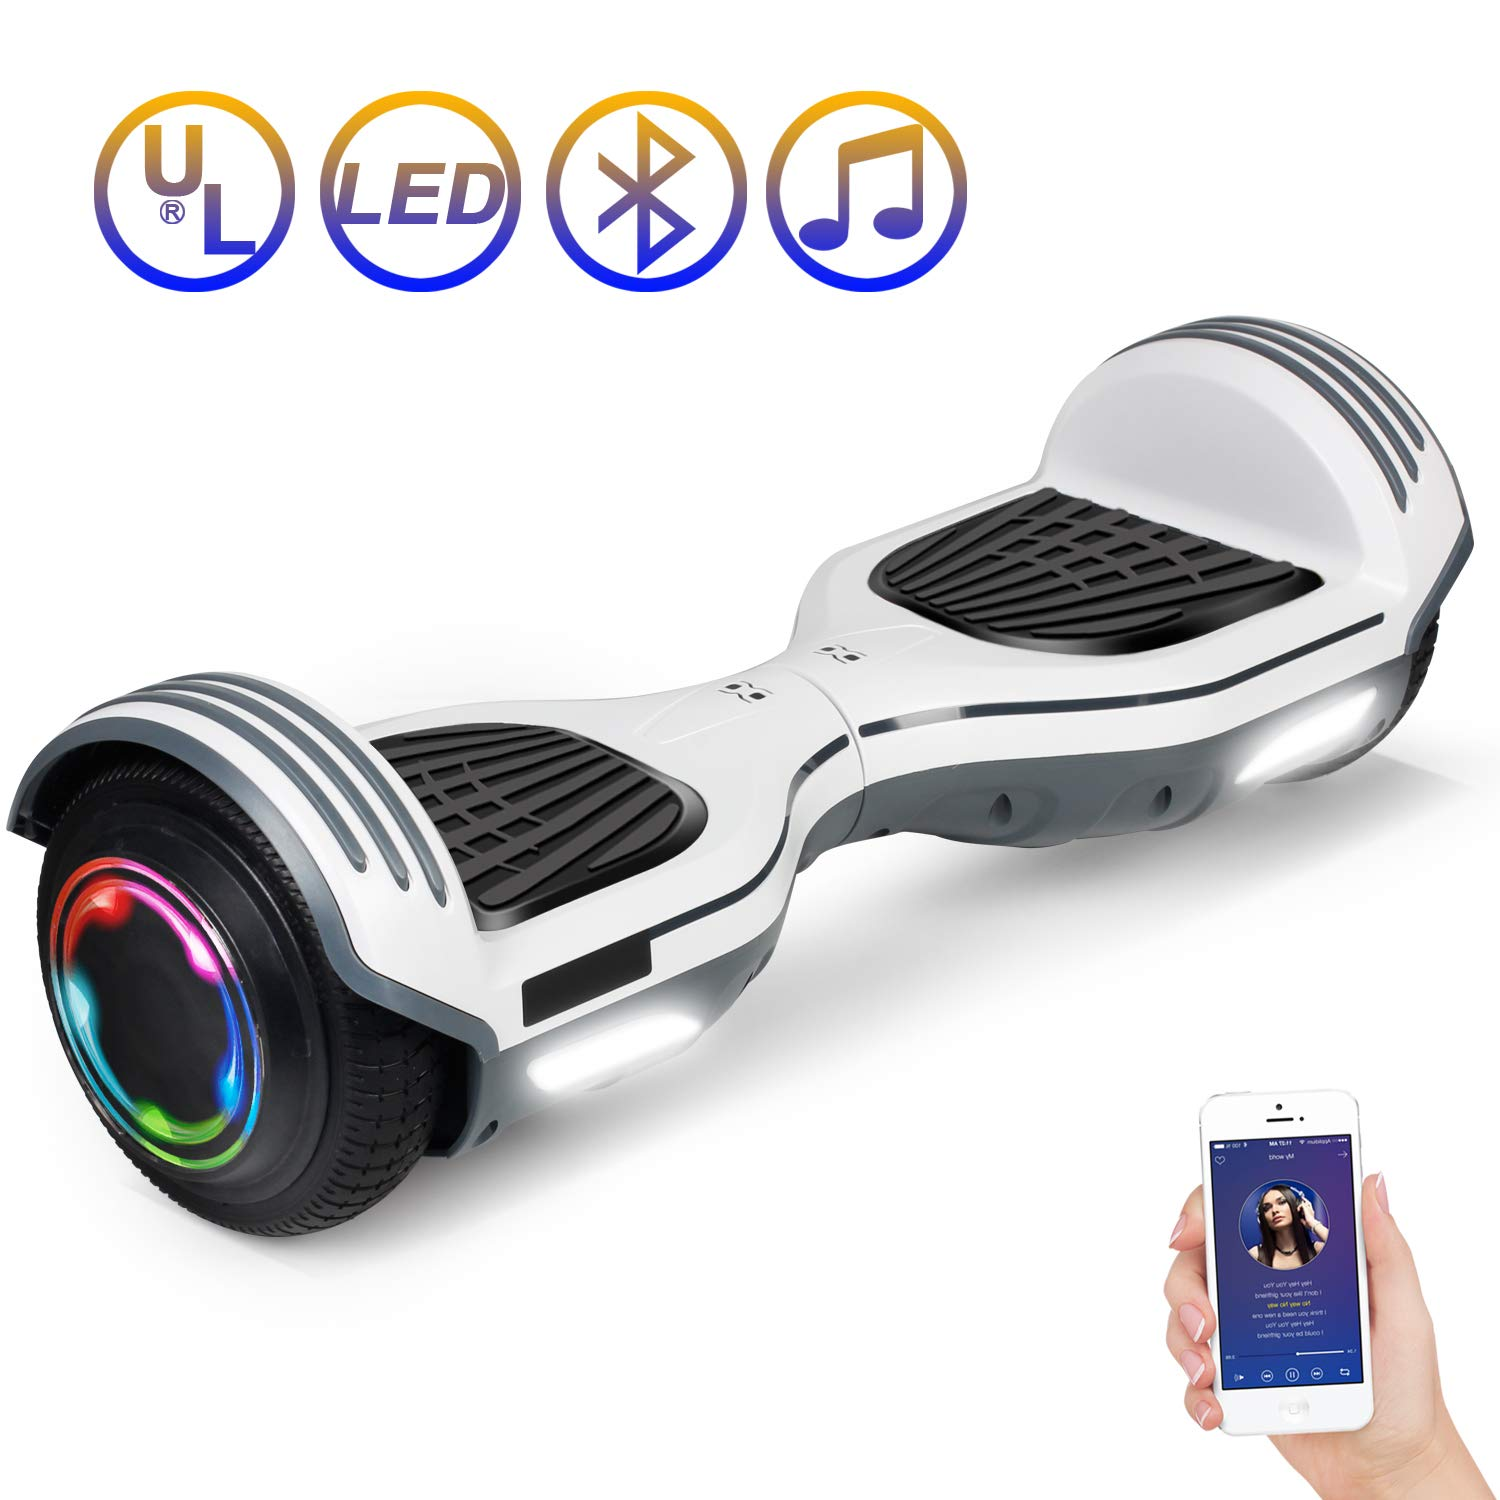 SISIGAD Hoverboard Self Balancing Scooter 6.5'' Two-Wheel Self Balancing Hoverboard with Bluetooth Speaker Electric Scooter for Adult Kids Gift UL 2272 Certified 138A Series - White